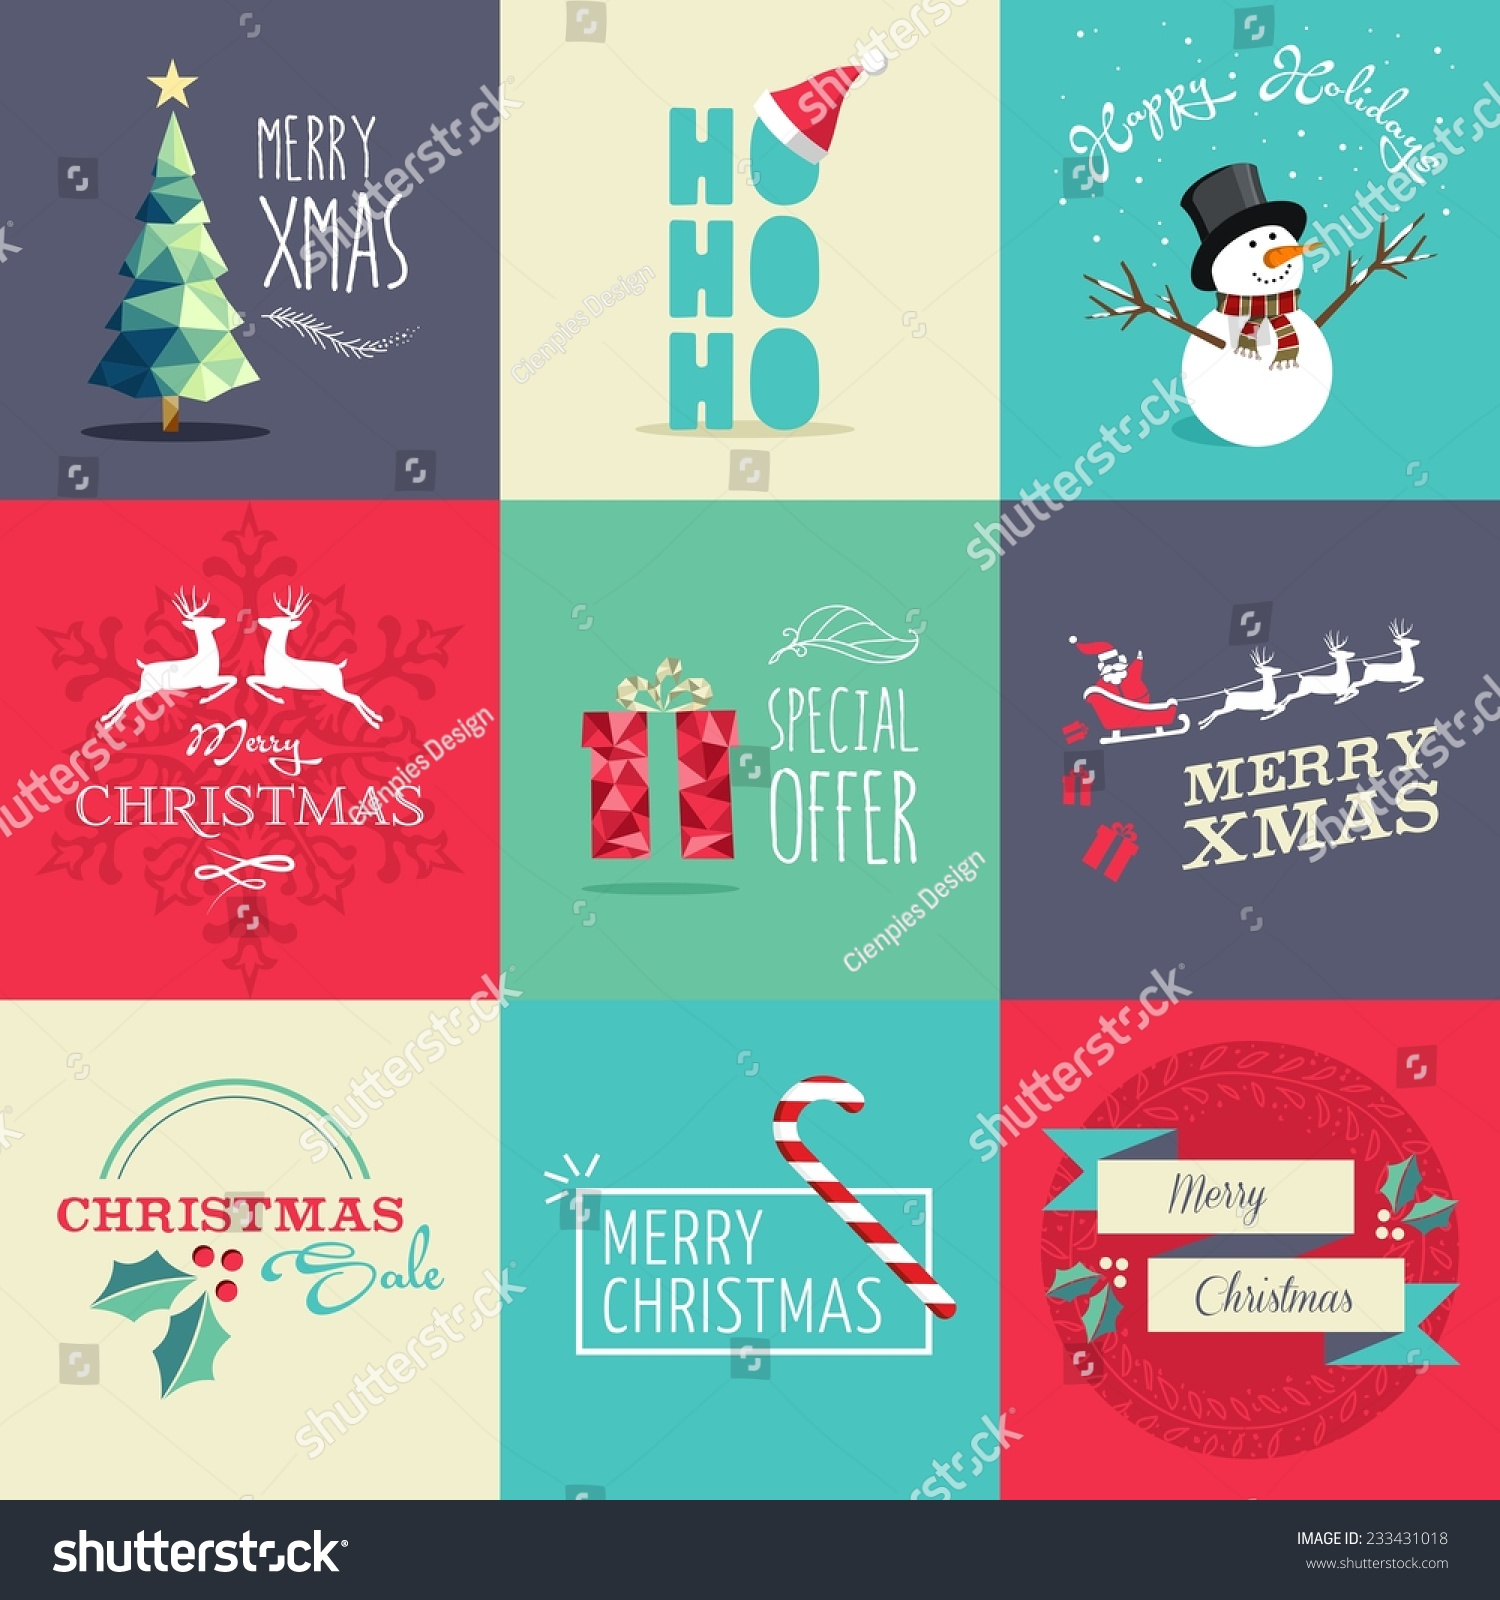 set flat design elements christmas ideal stock vector  set of flat design elements for christmas ideal for greeting card poster and web